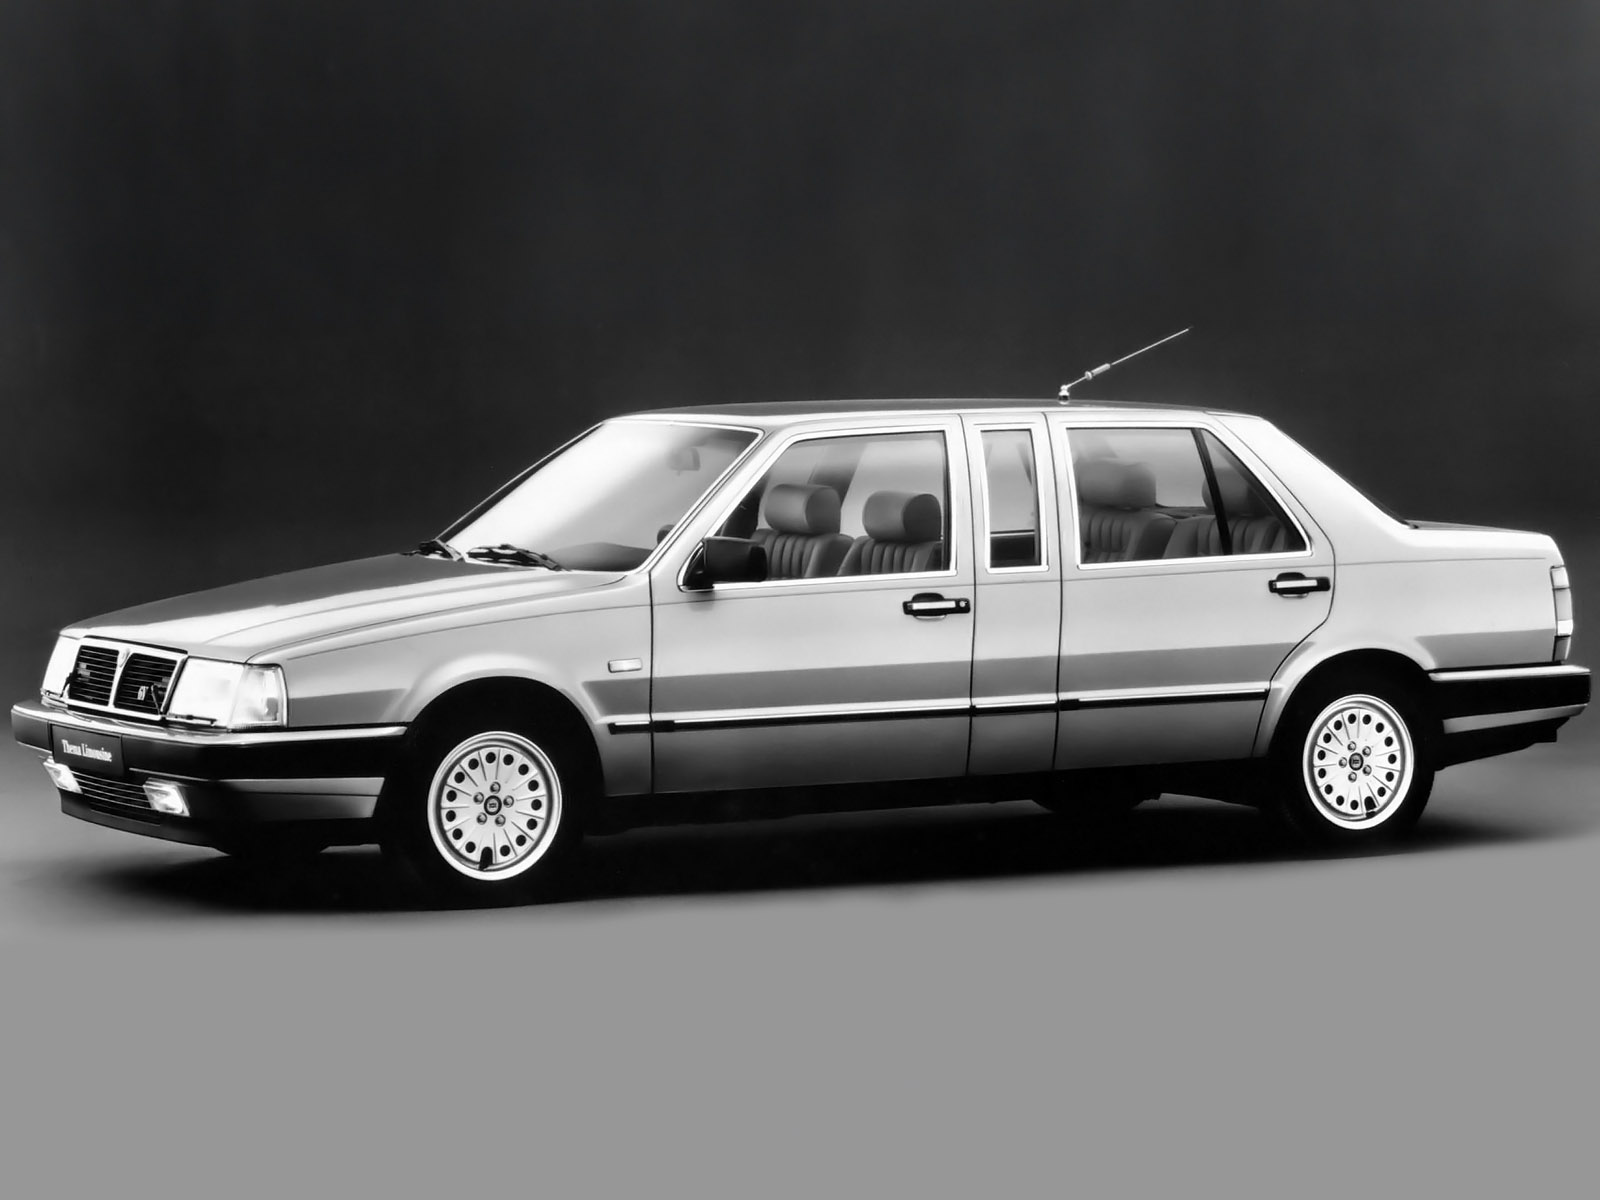 http://carinpicture.com/wp-content/uploads/2012/07/Lancia-Thema-2.8-V6-Limousine-1984-1988-Photo-02.jpg